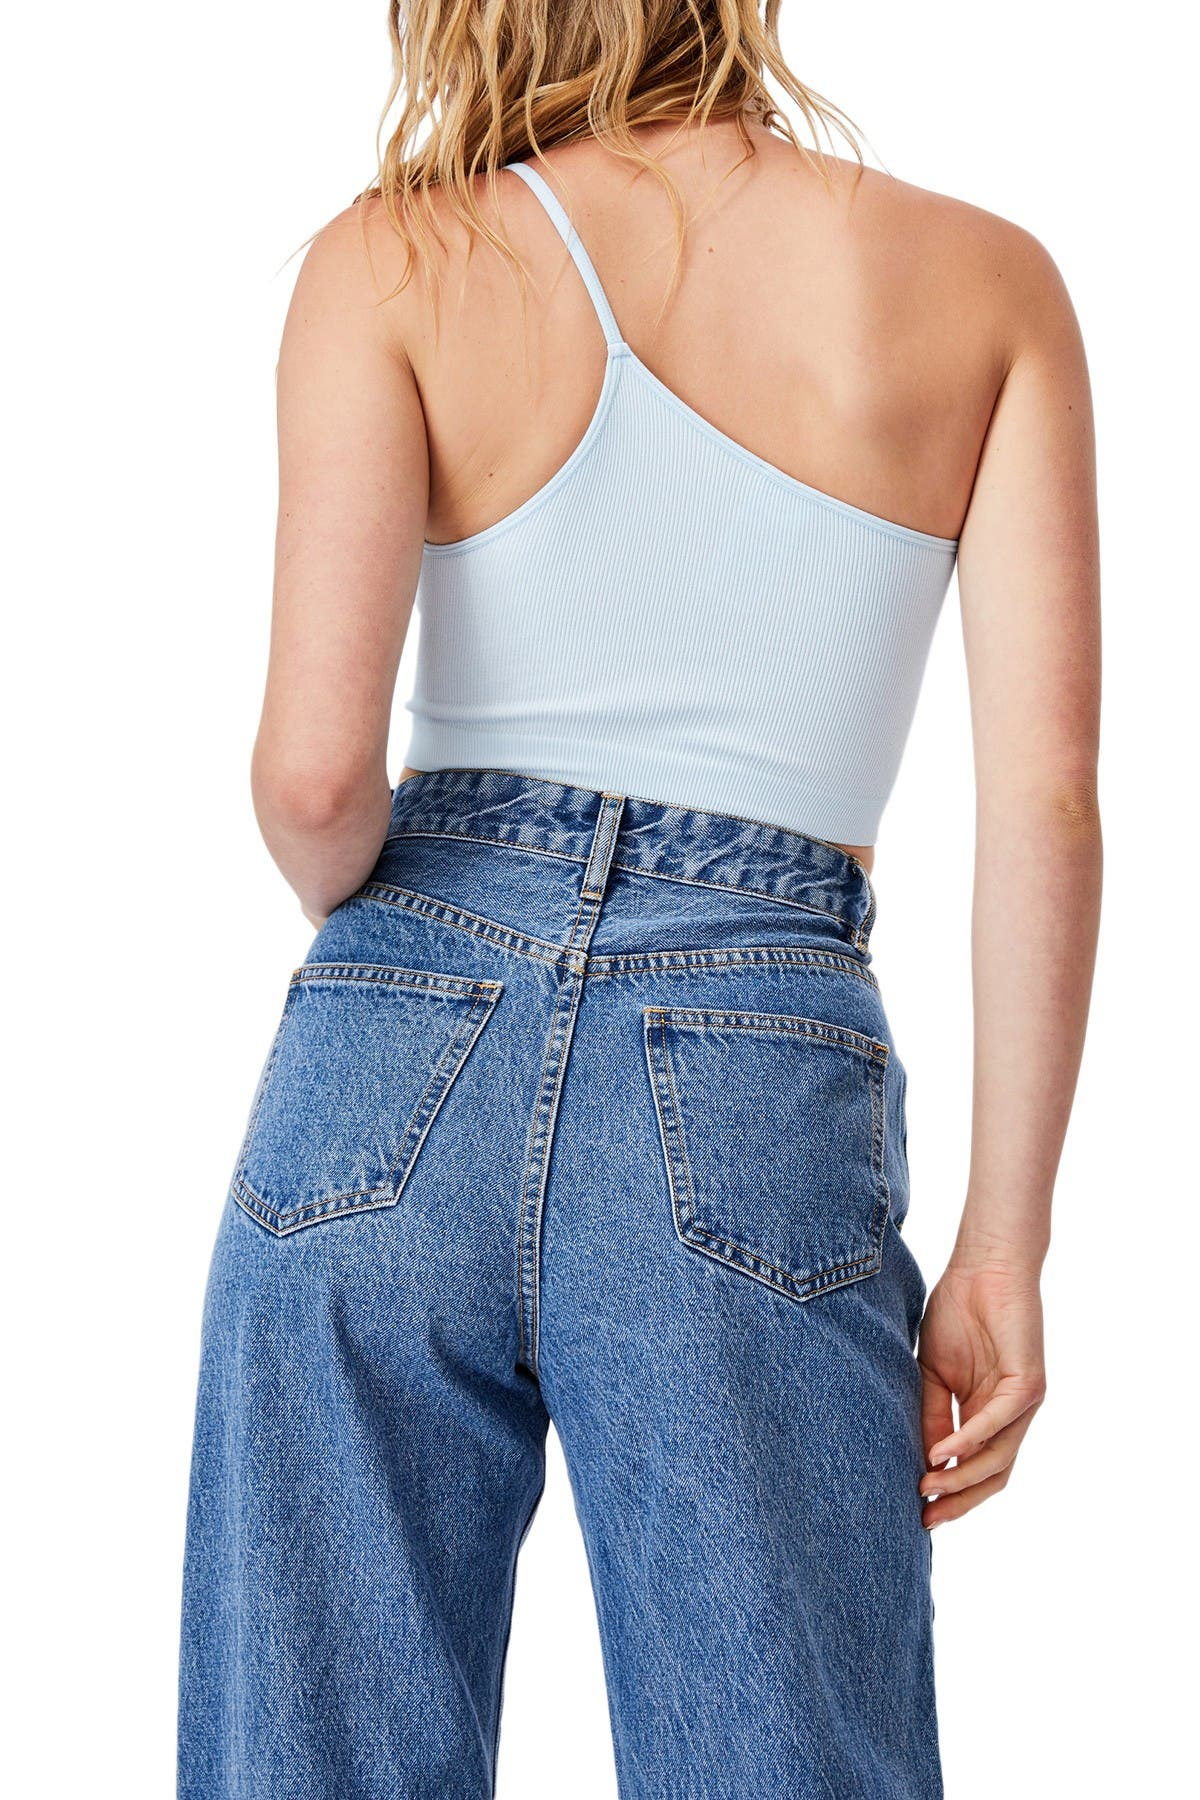 Image of Cotton On Boston Seamless One Shoulder Cami